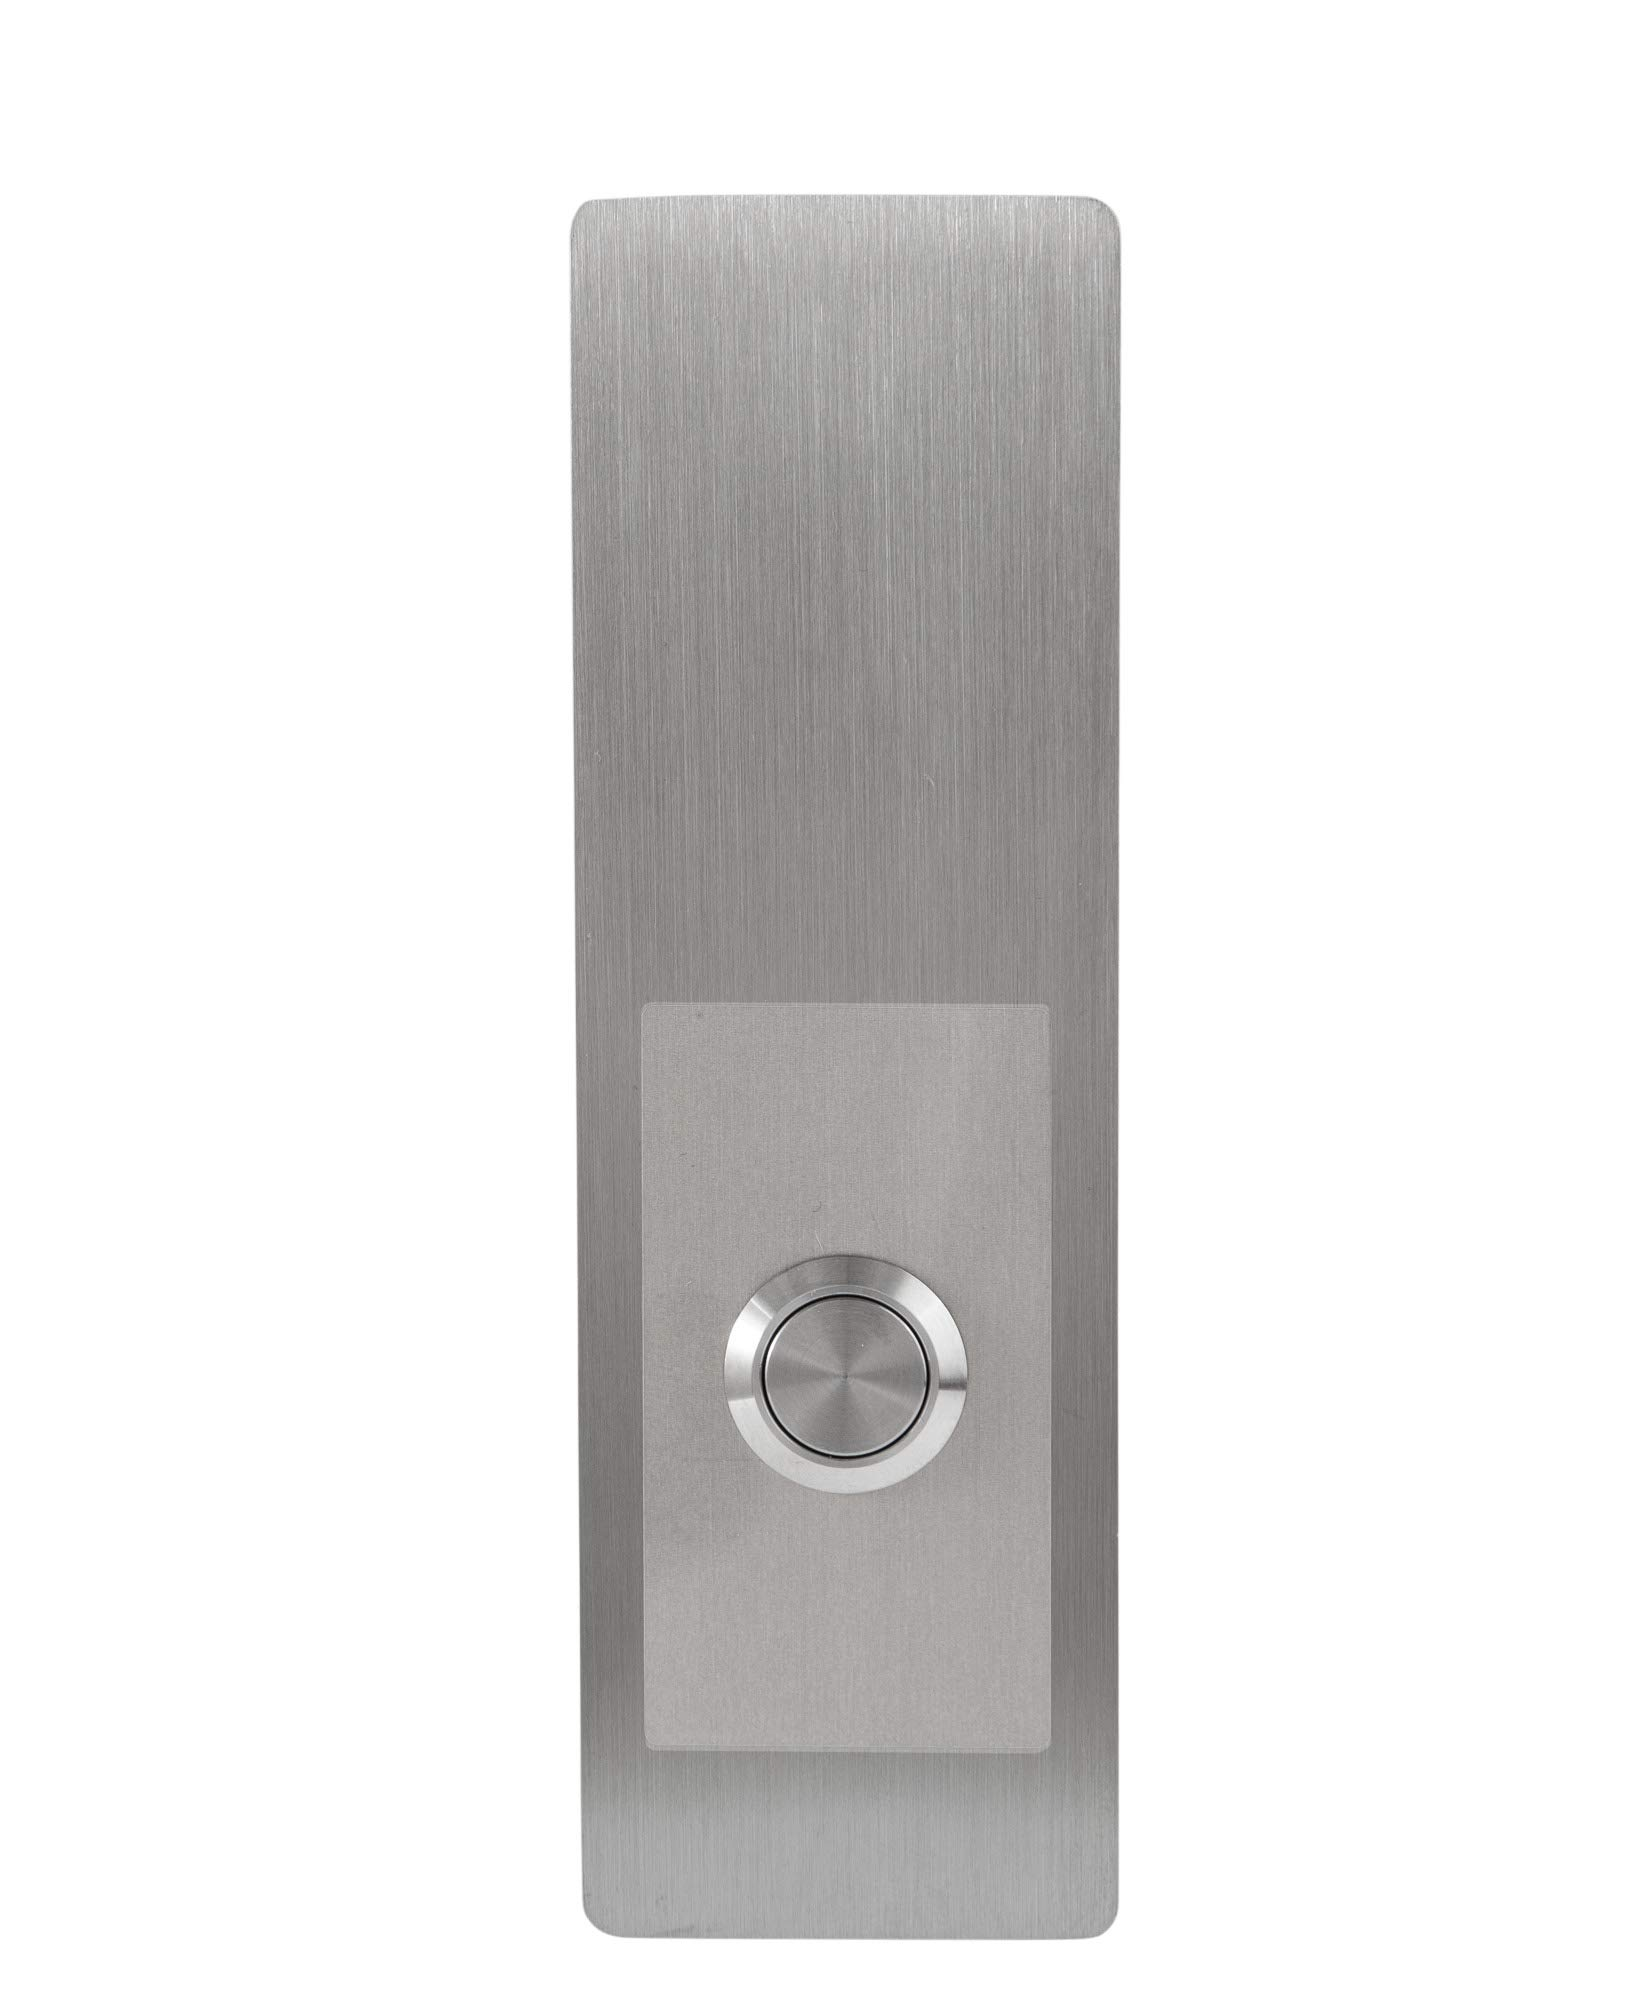 """Modern Stainless Hardware Model R5 Stainless Steel Doorbell Button in 304 Stainless Steel 1.57"""" x 5.11"""" x 5/32"""" (4mm thick)"""